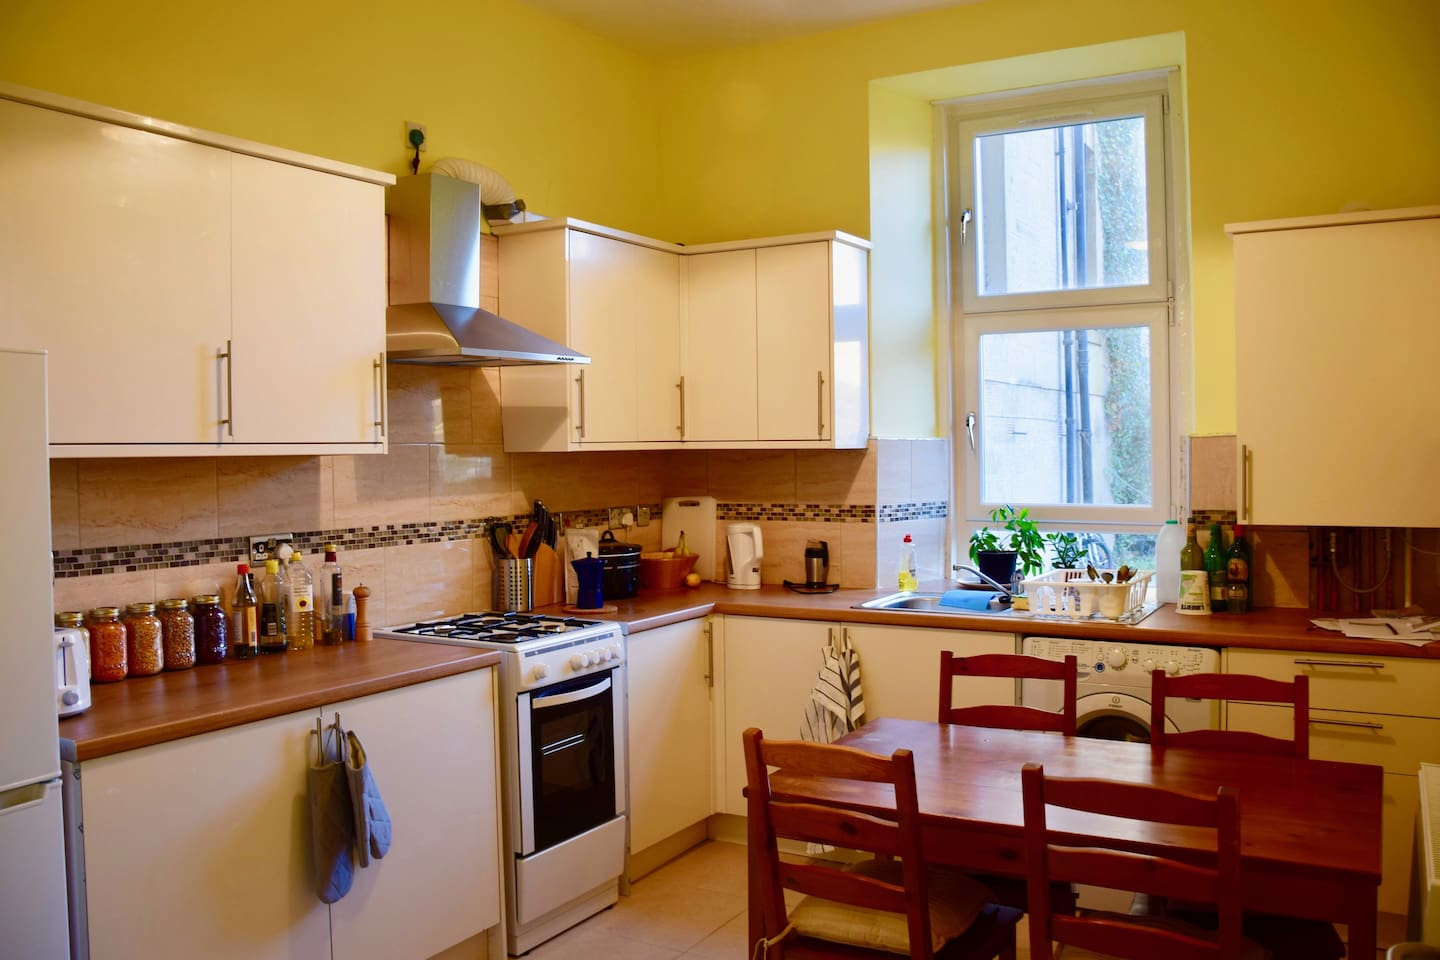 Our cosy kitchen: All you need to make a nice dinner